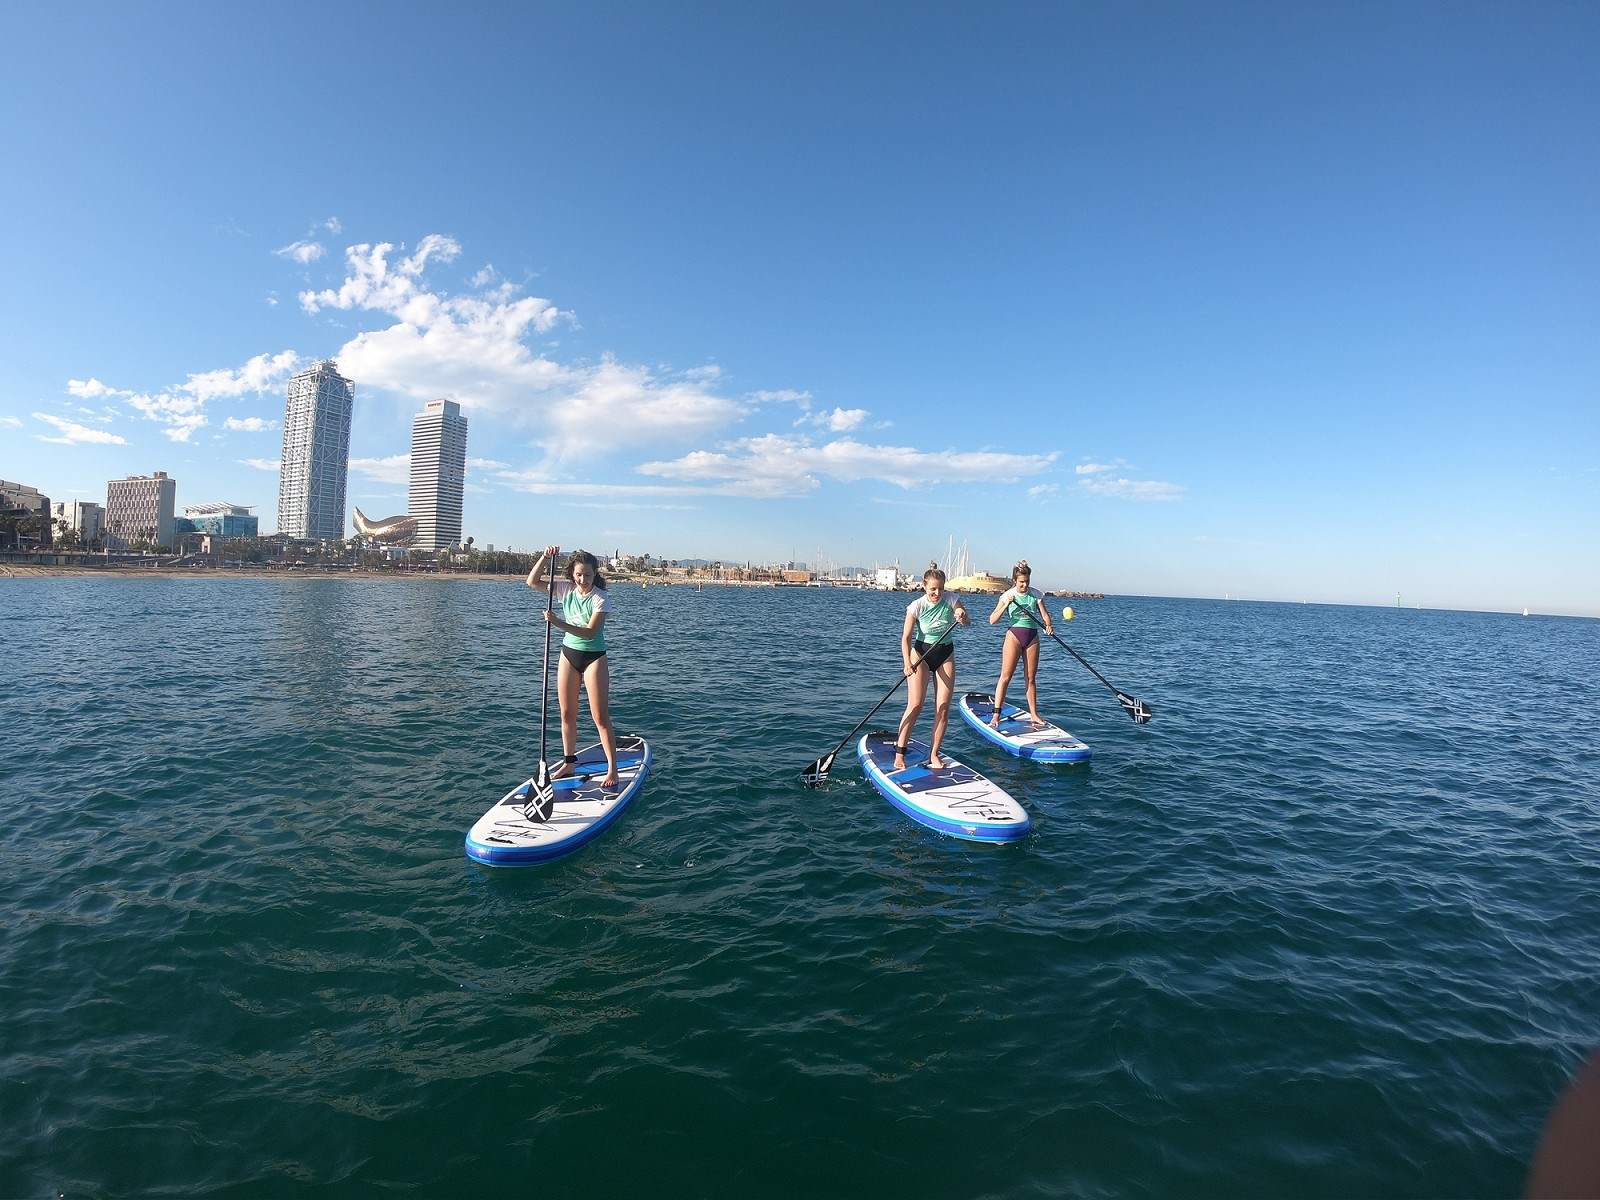 Speakeasy student stand-up paddle boarding